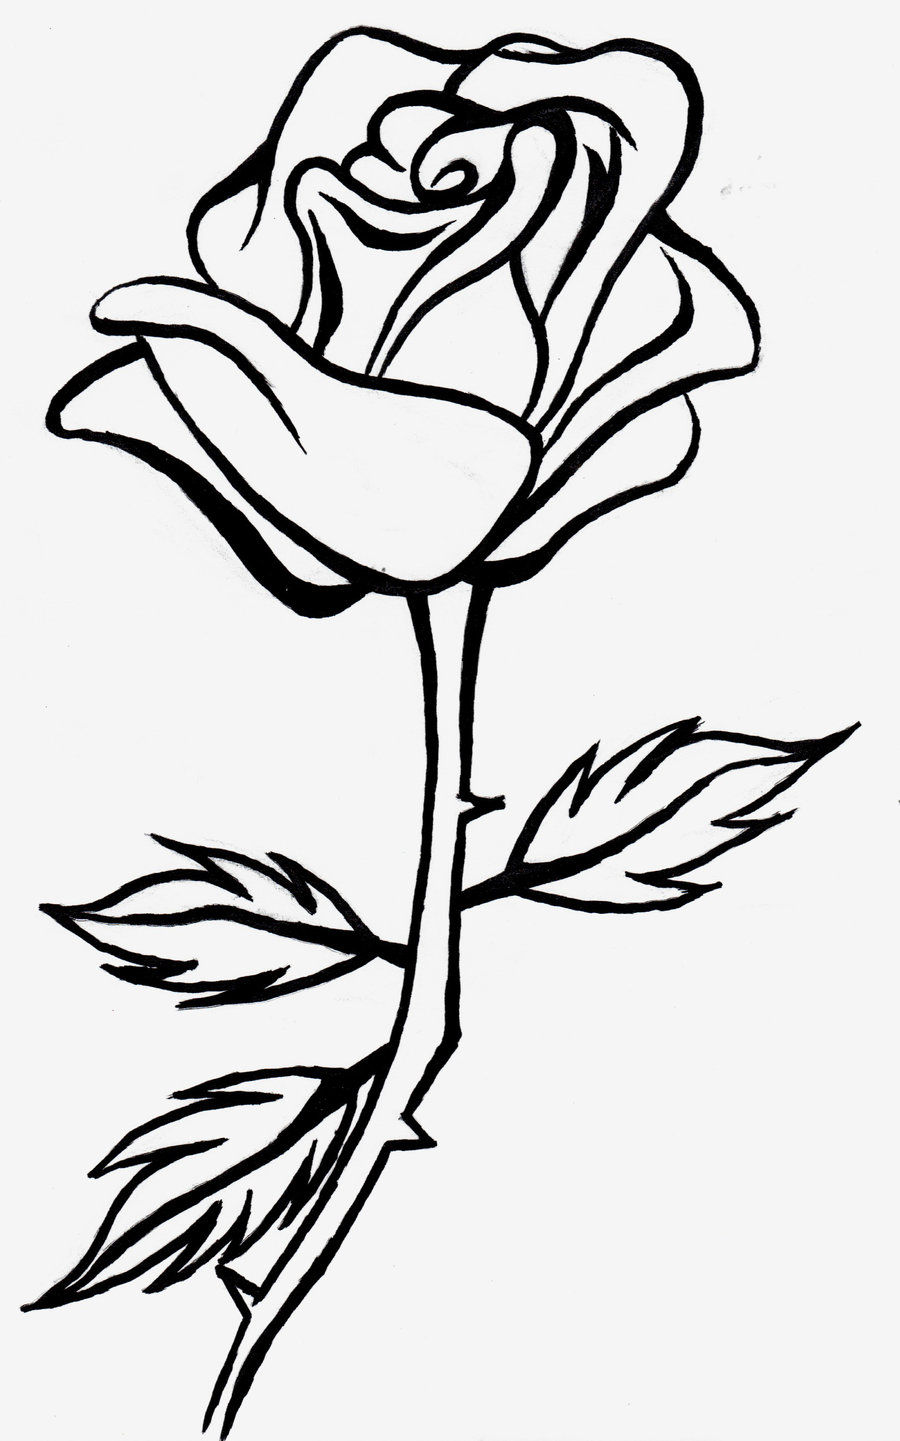 rose black and white drawing at getdrawings com free for personal rh getdrawings com rose bouquet black and white clipart rose bouquet black and white clipart